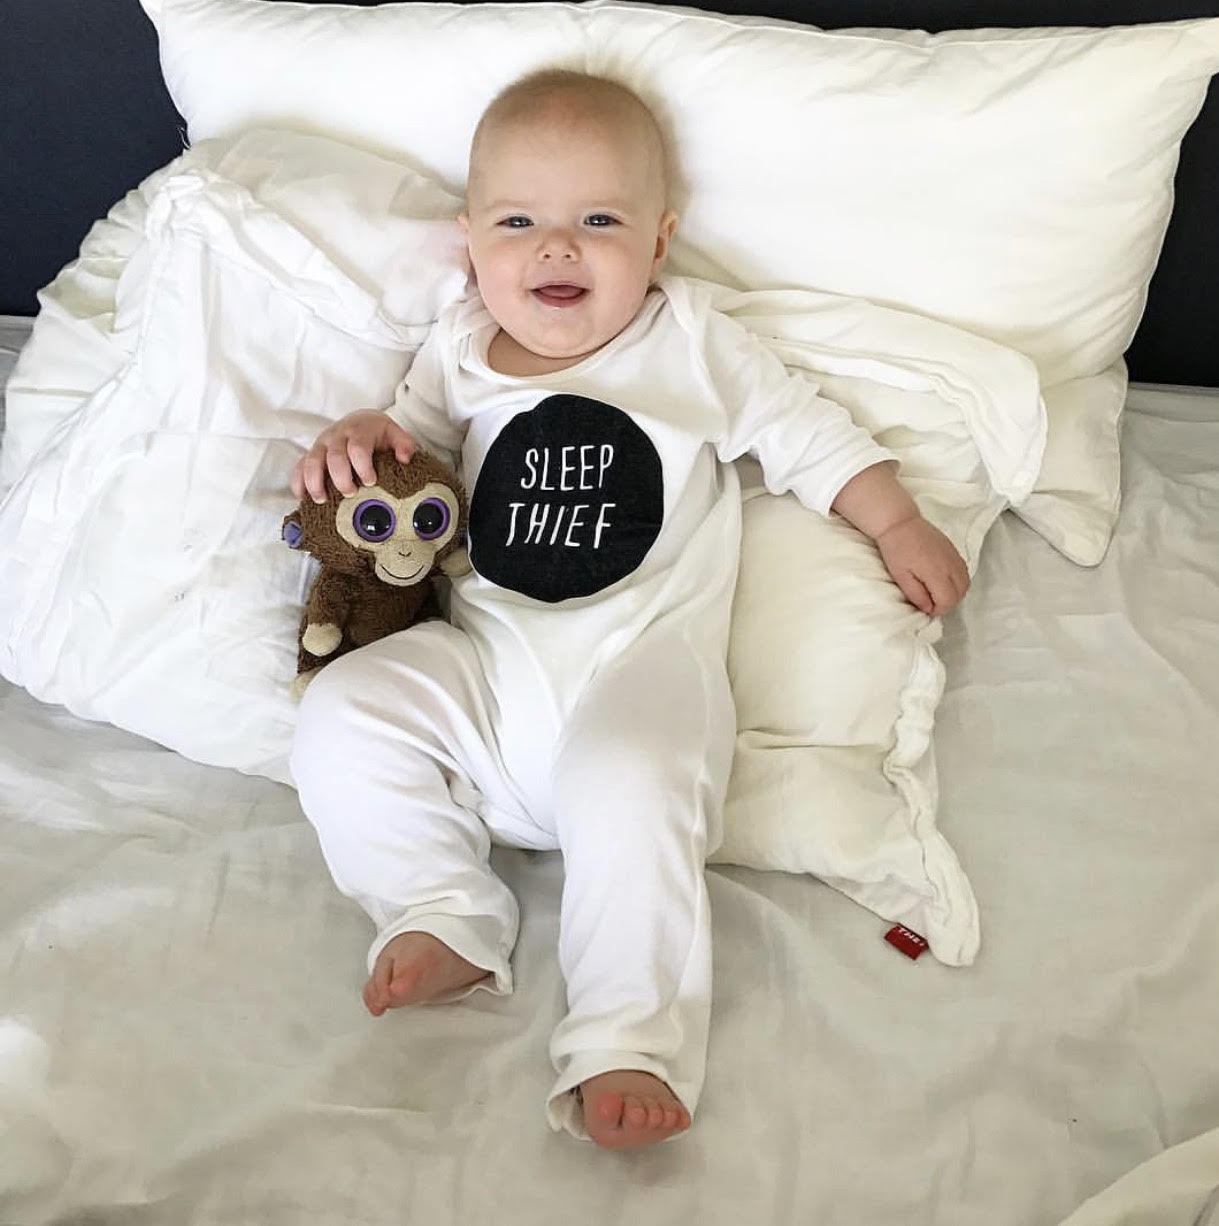 A Little Bit About Baby Sleep